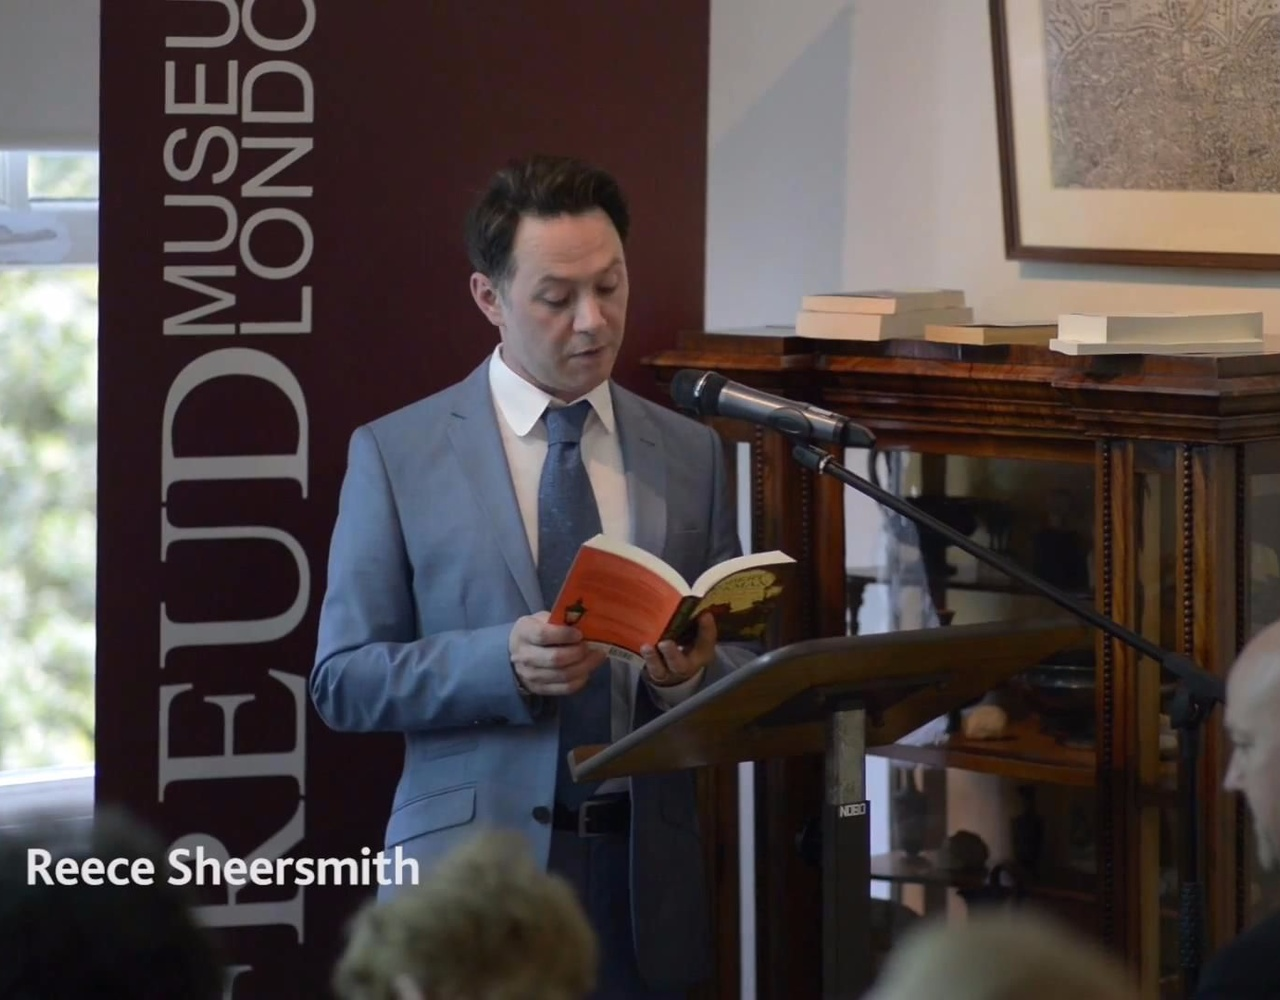 【Reece Shearsmith】【Jeremy Dyson】Robert Aickman at the Freud Museum